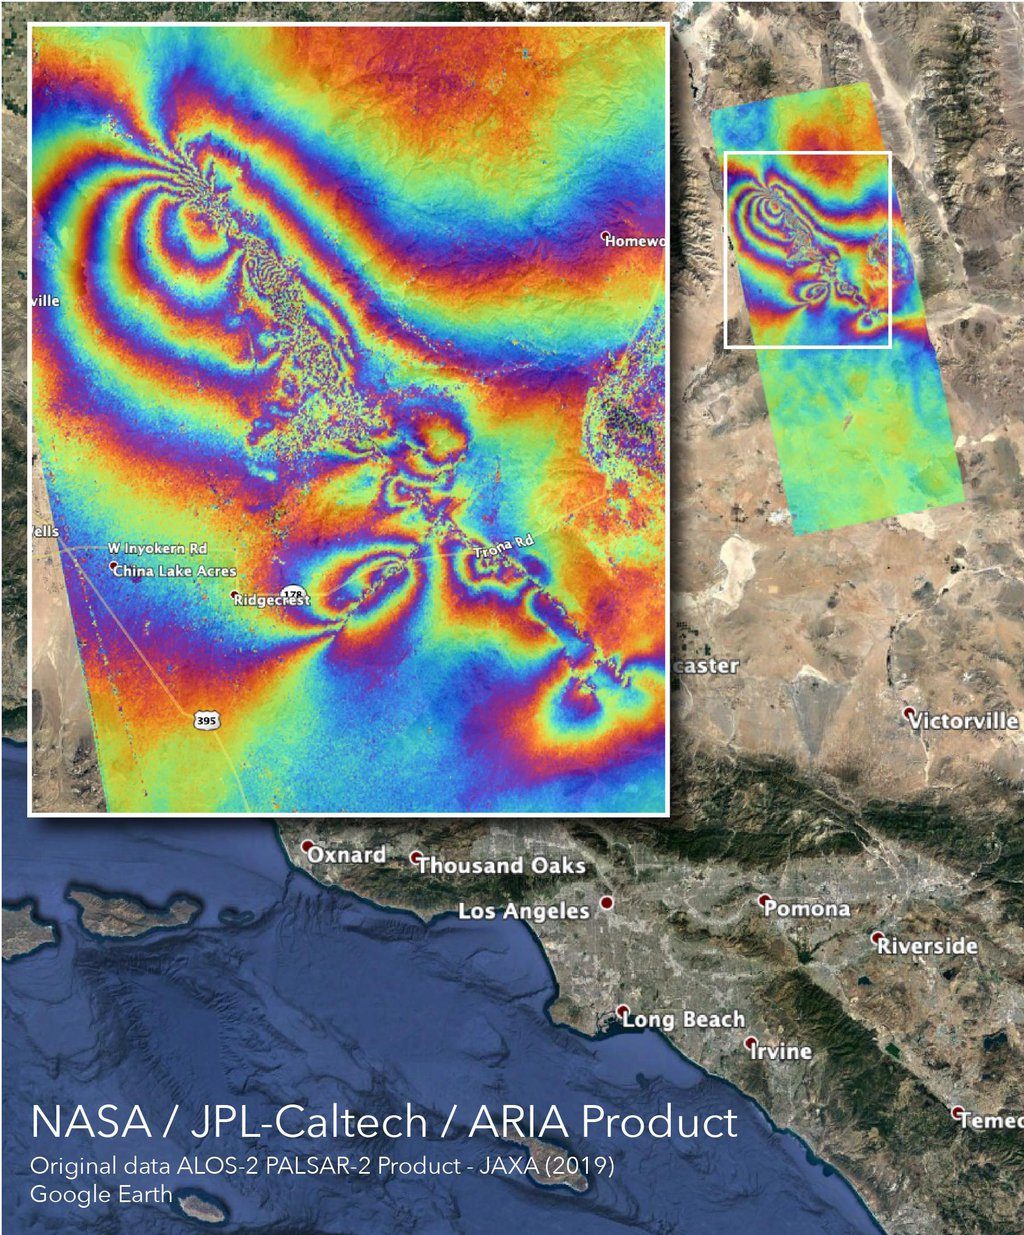 The ARIA team at NASA's Jet Propulsion Laboratory created this InSAR map that shows surface displacement caused by the recent major earthquakes in Southern California.